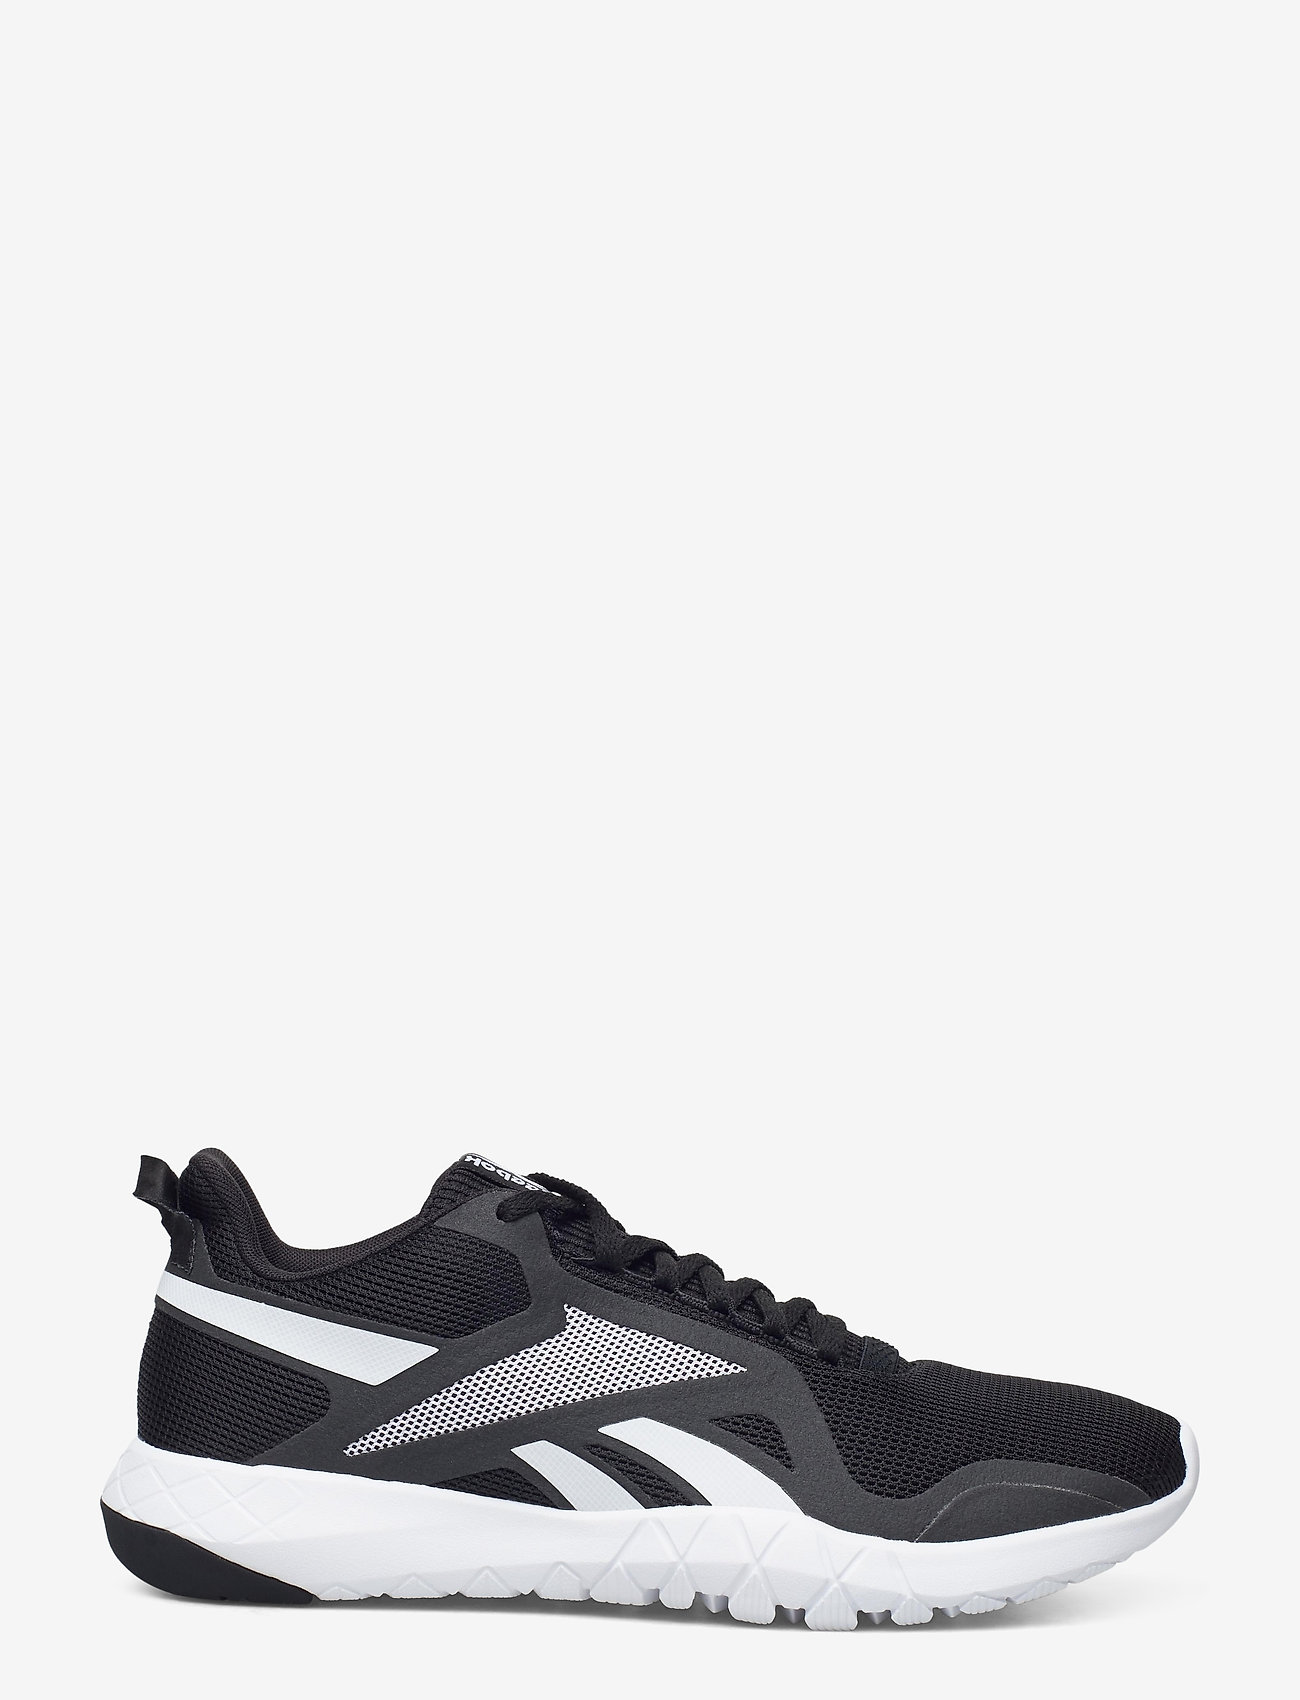 Reebok Performance - FLEXAGON FORCE 3.0 - träningsskor - cblack/cblack/ftwwht - 1